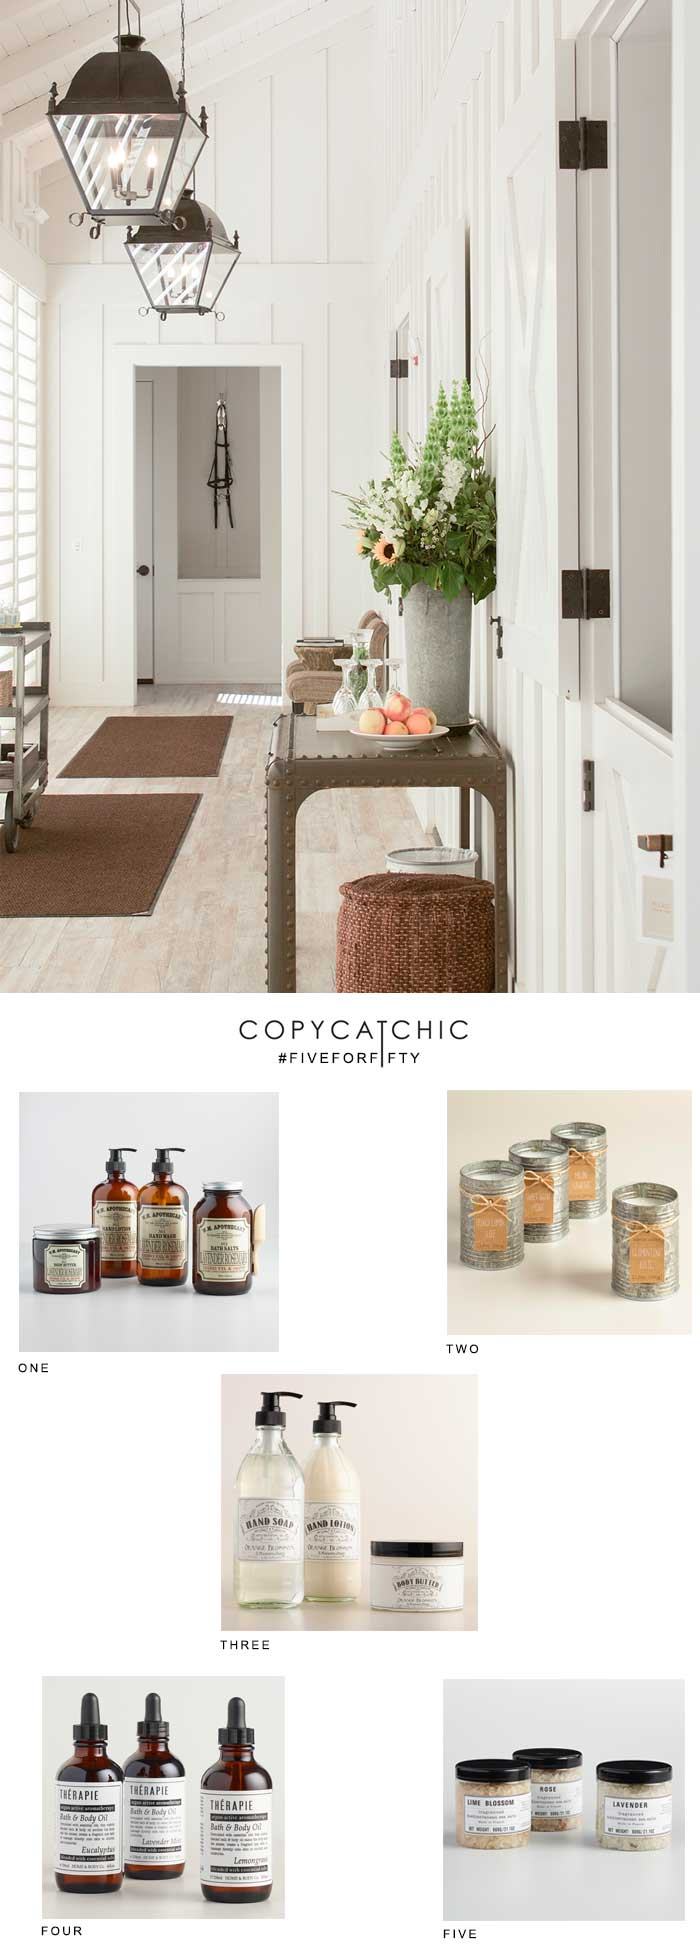 Copycatchi #fiveforfifty products from World Market to create a home spa bath salts, candles, balms, soaps for spa lovers! Luxe living for less